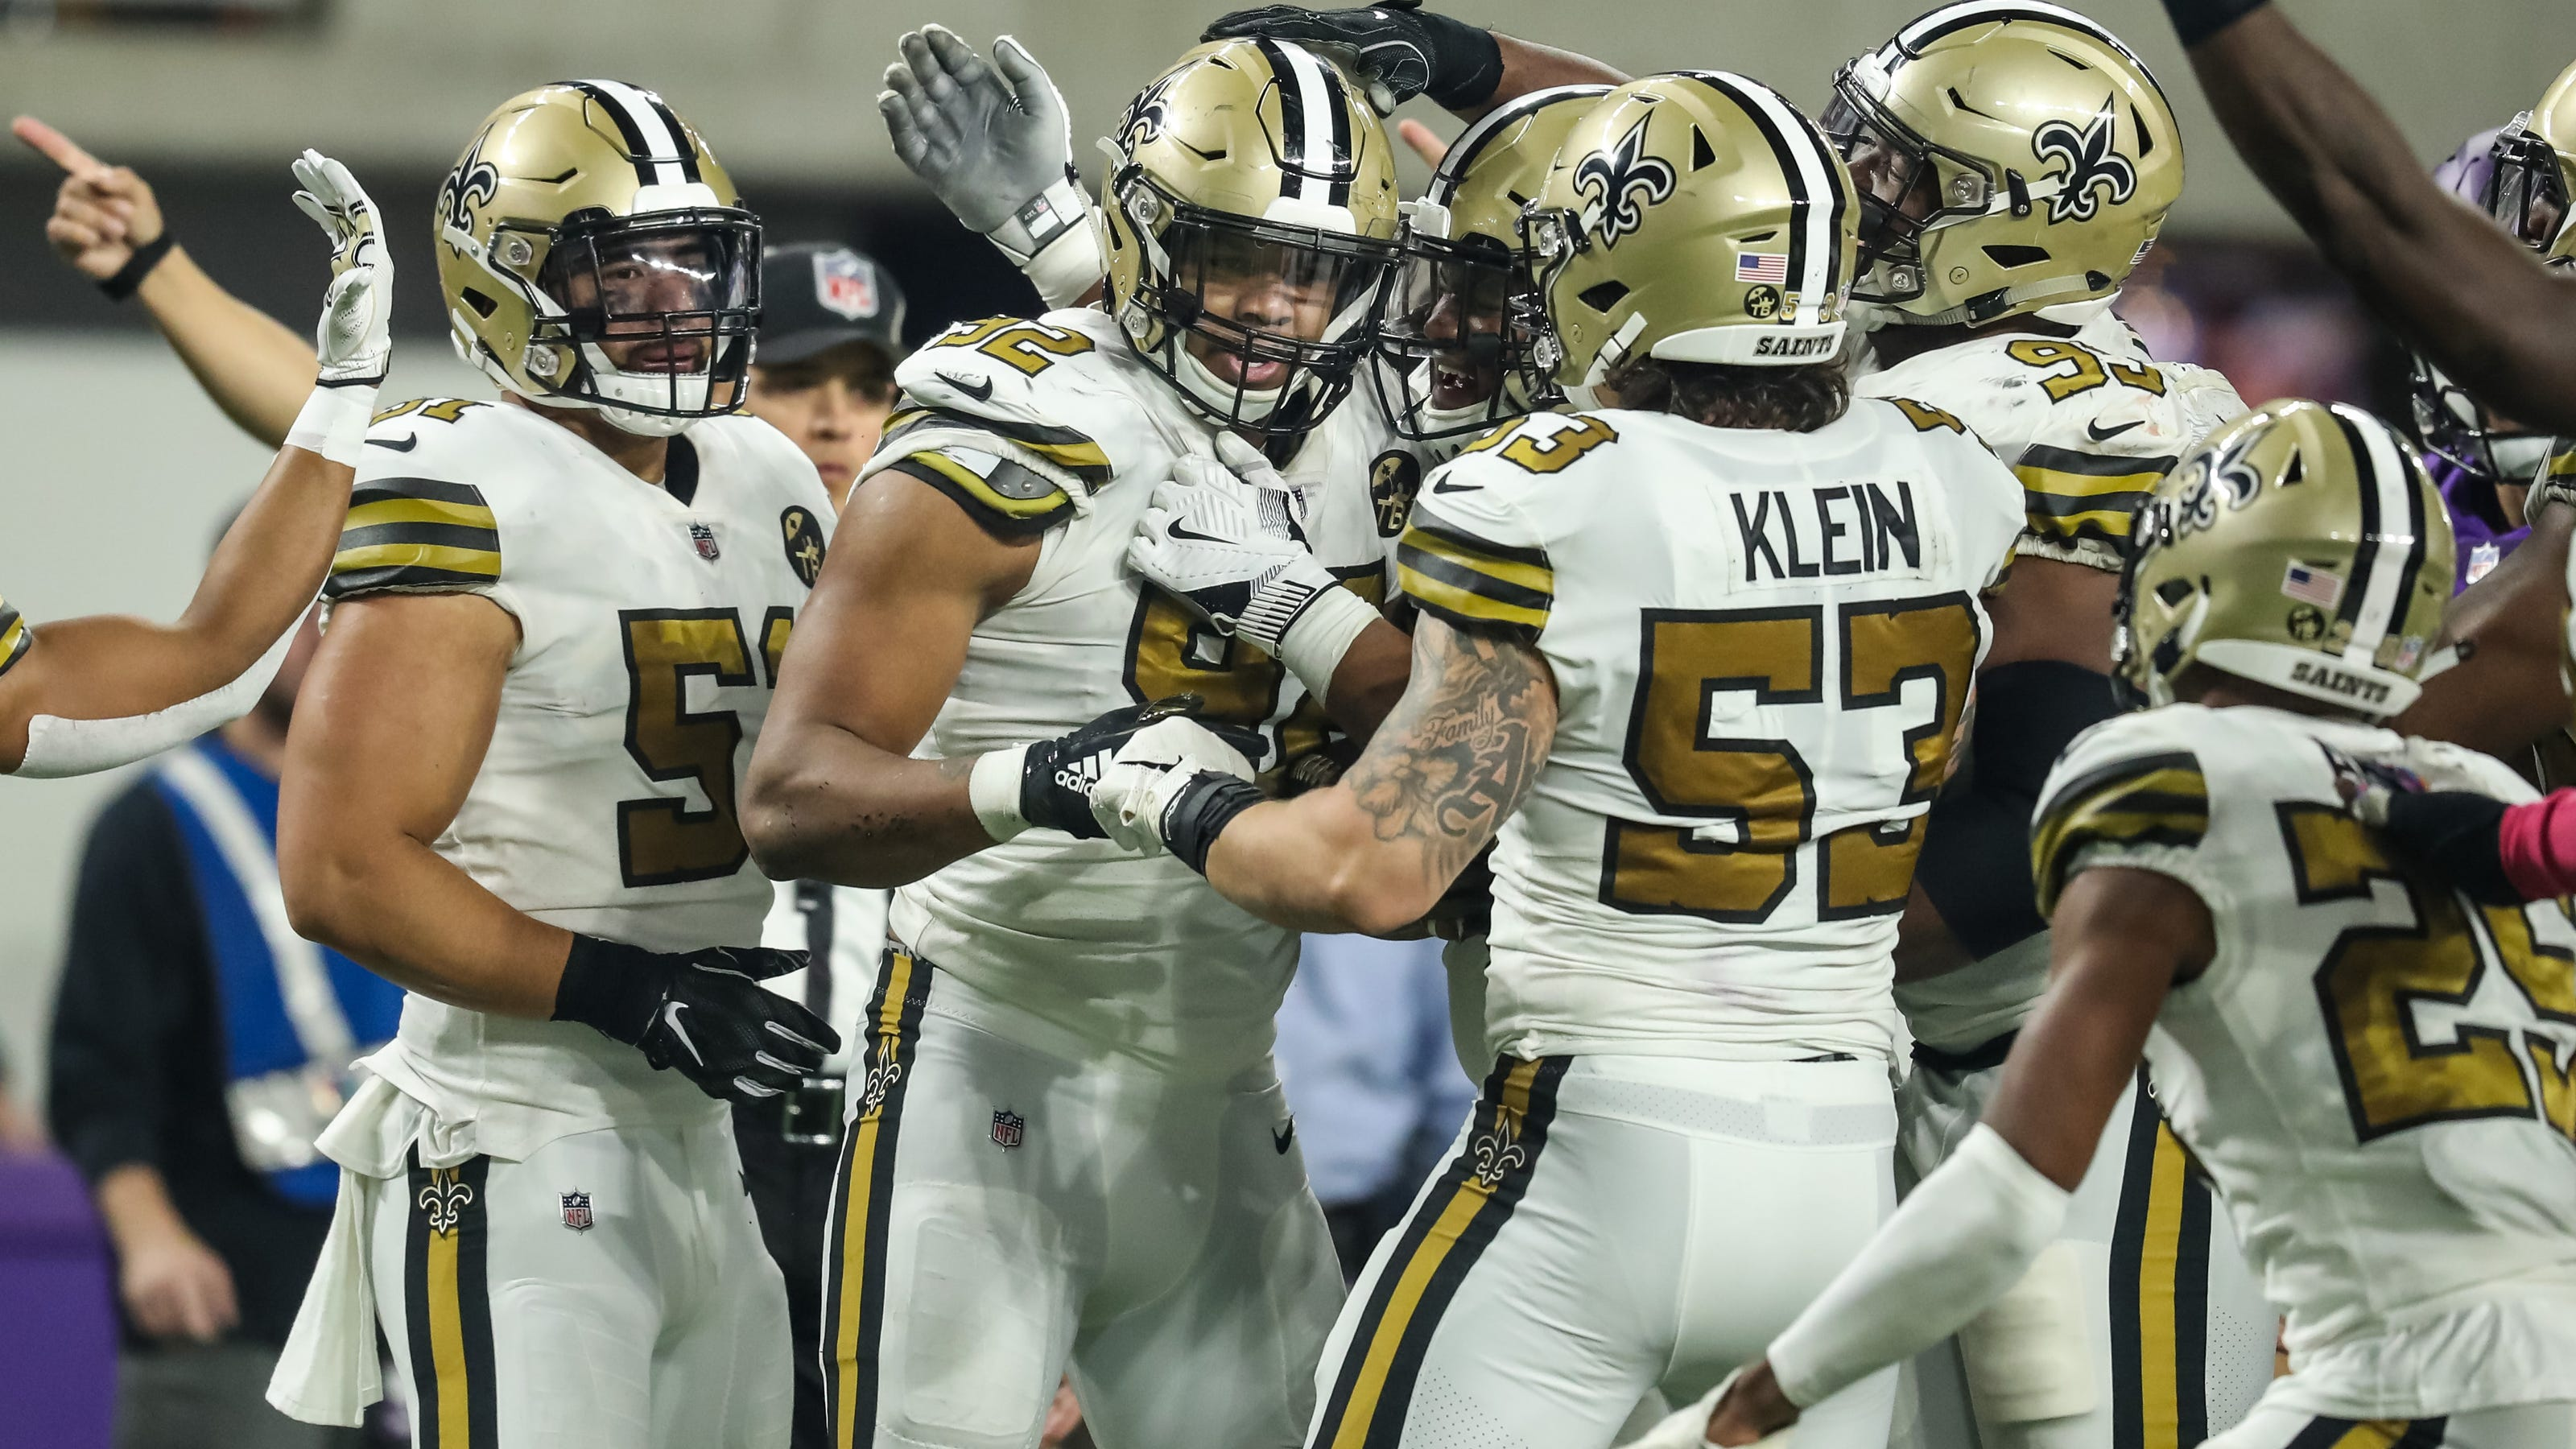 Nfl_-new-orleans-saints-at-minnesota-vikings-1